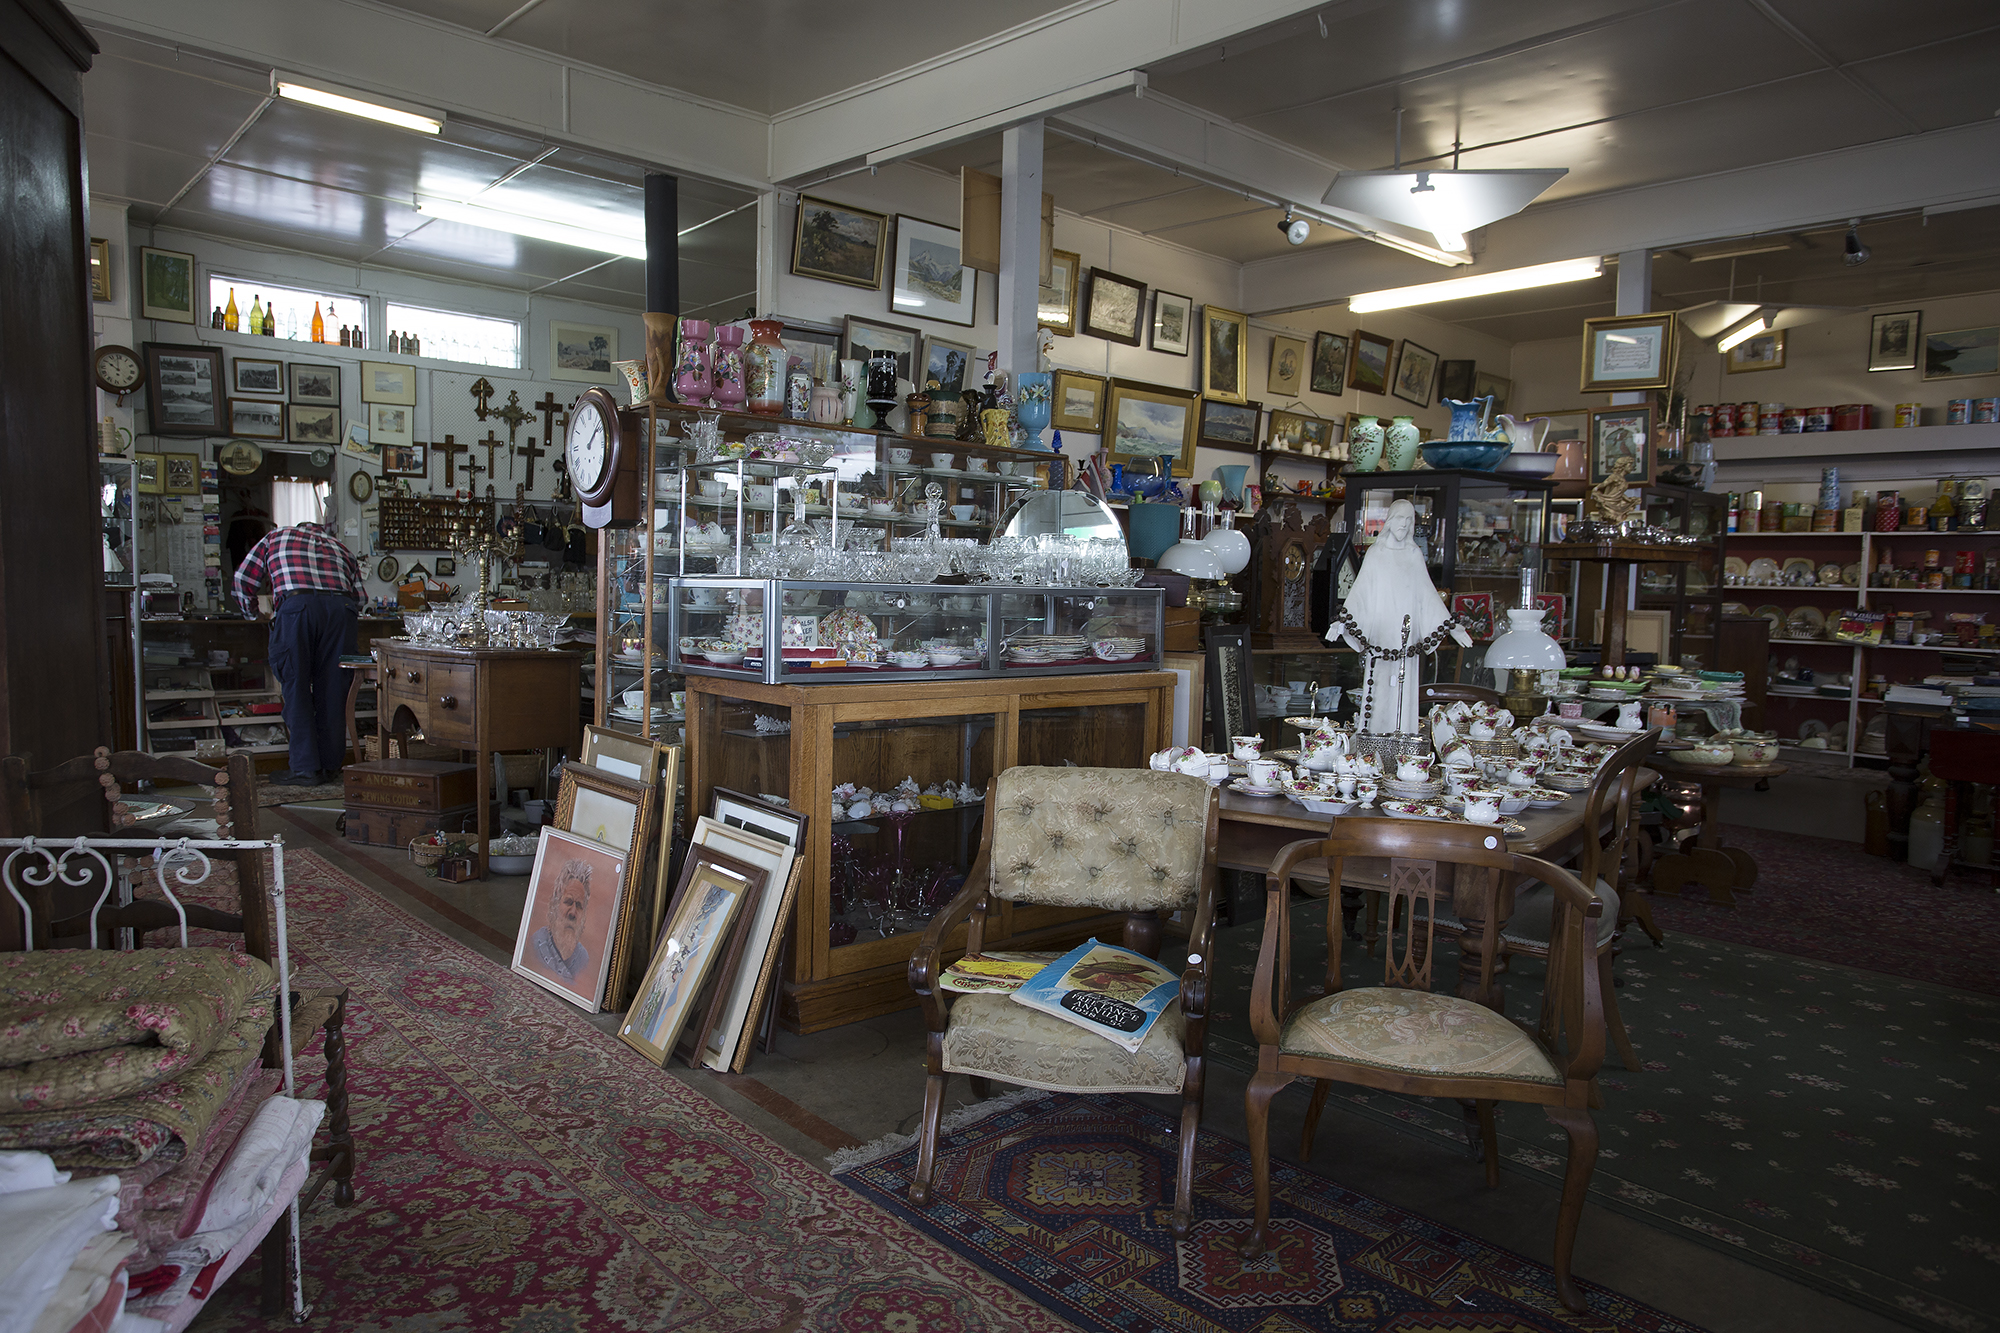 Every inch of space is filled with trinkets, jewels, art and of course curios.